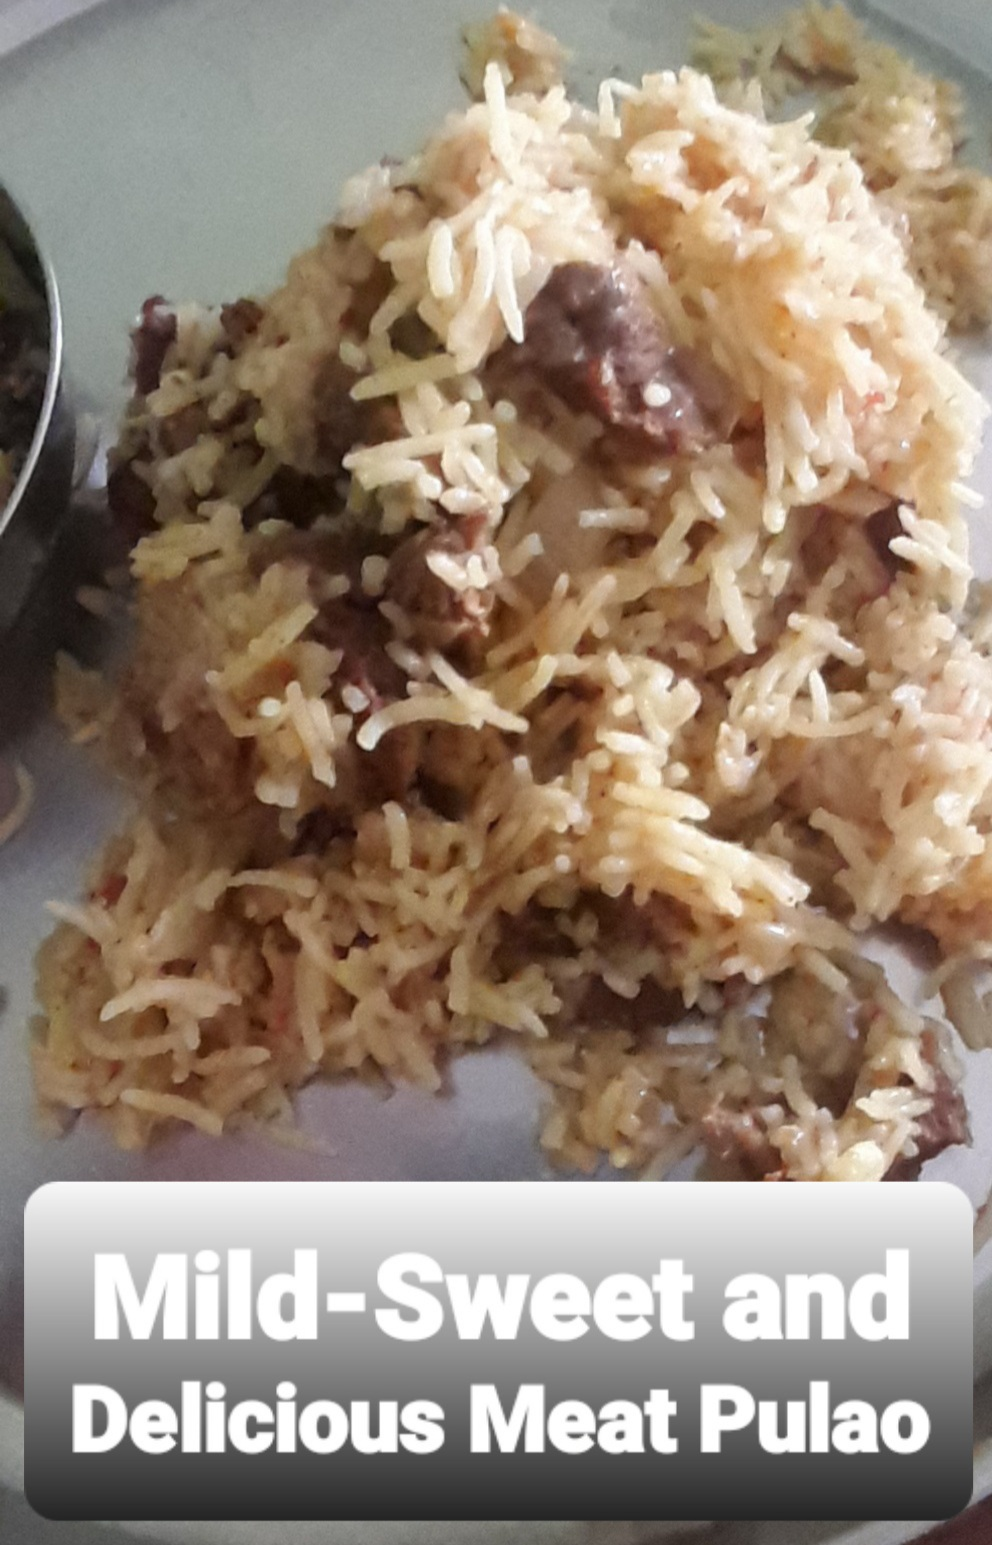 Mild-Sweet and Delicious Meat Pulao